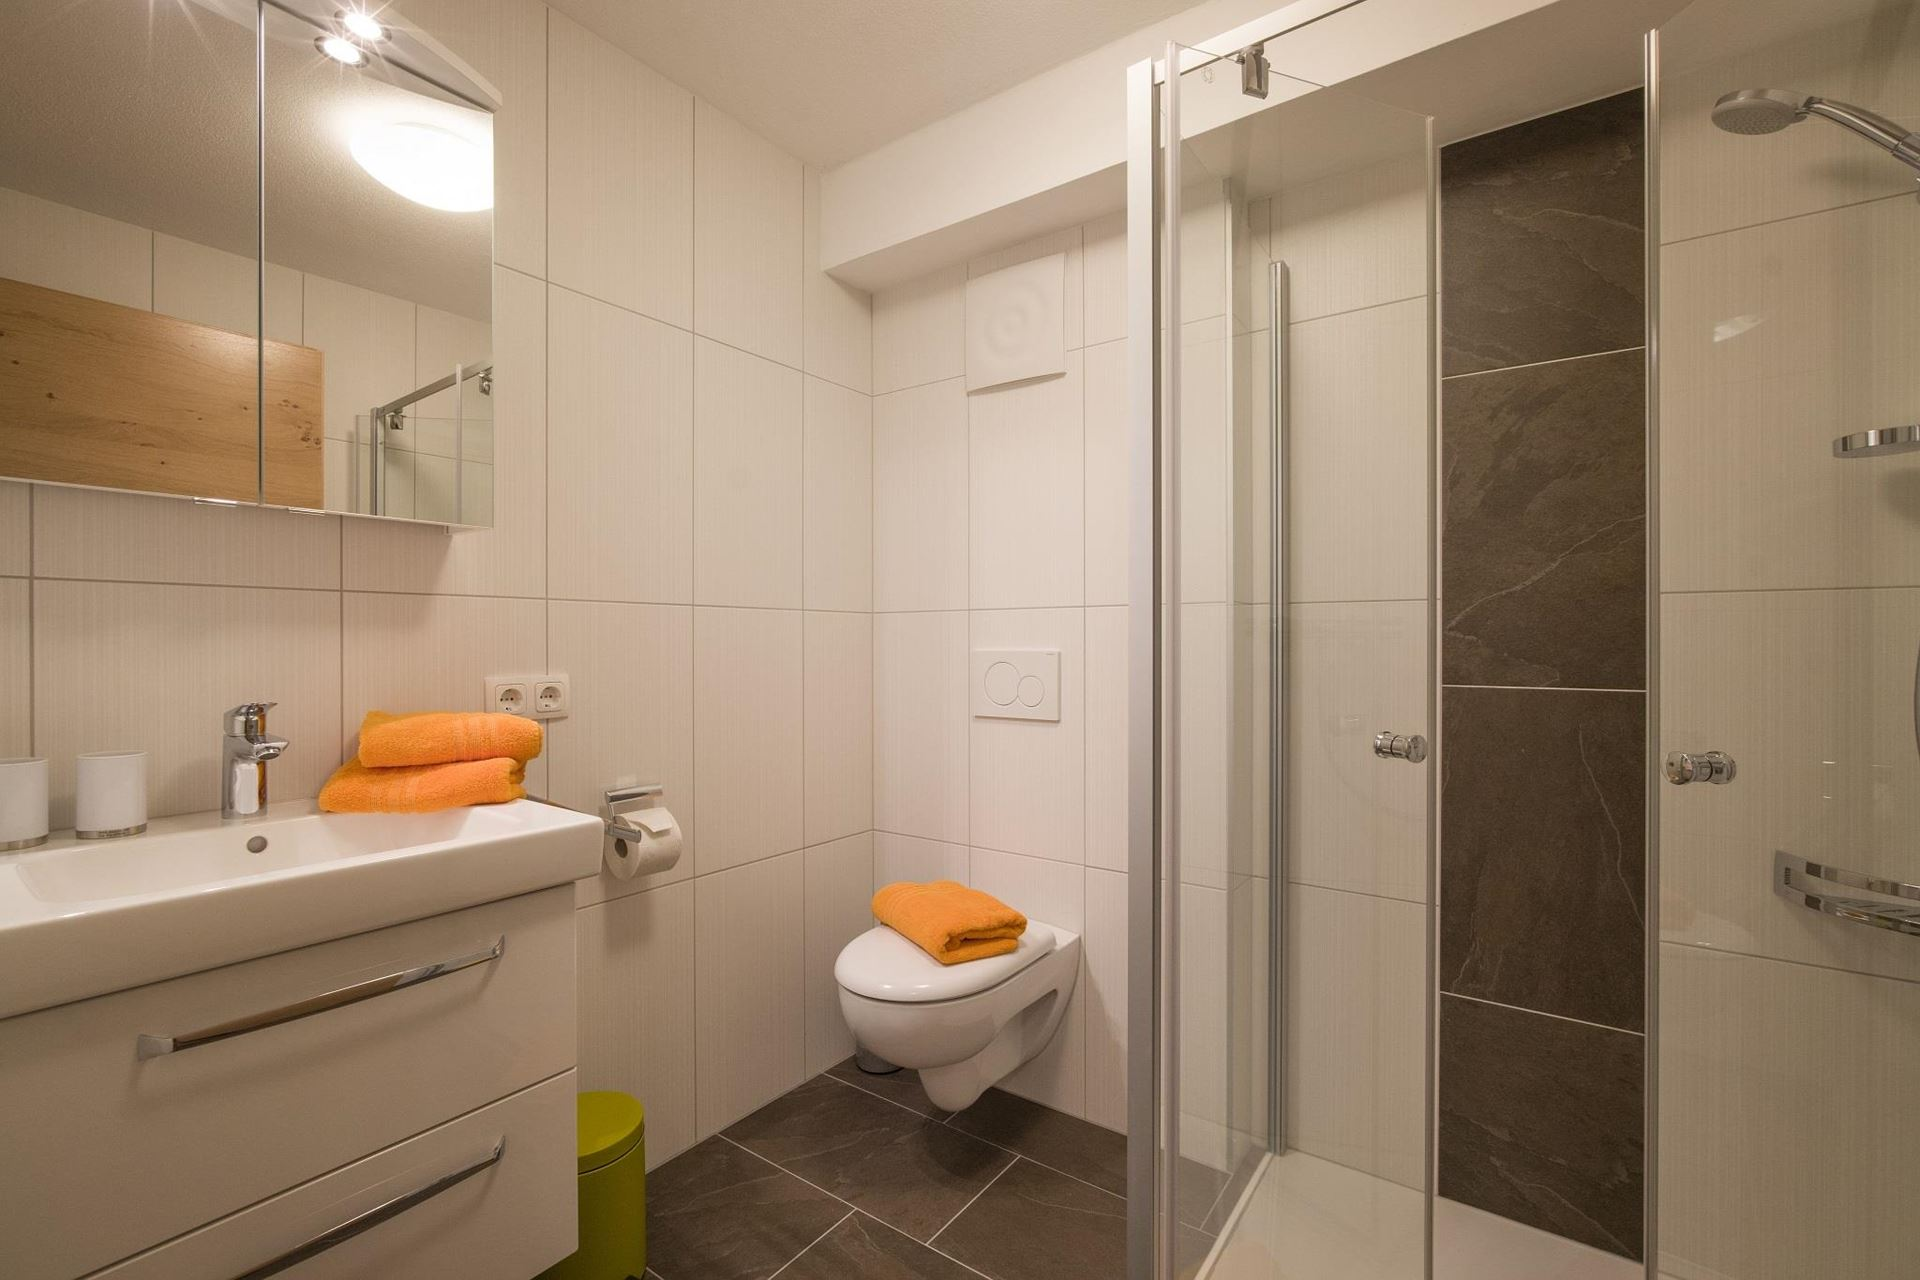 Appartement Gross  BAdezimmer1